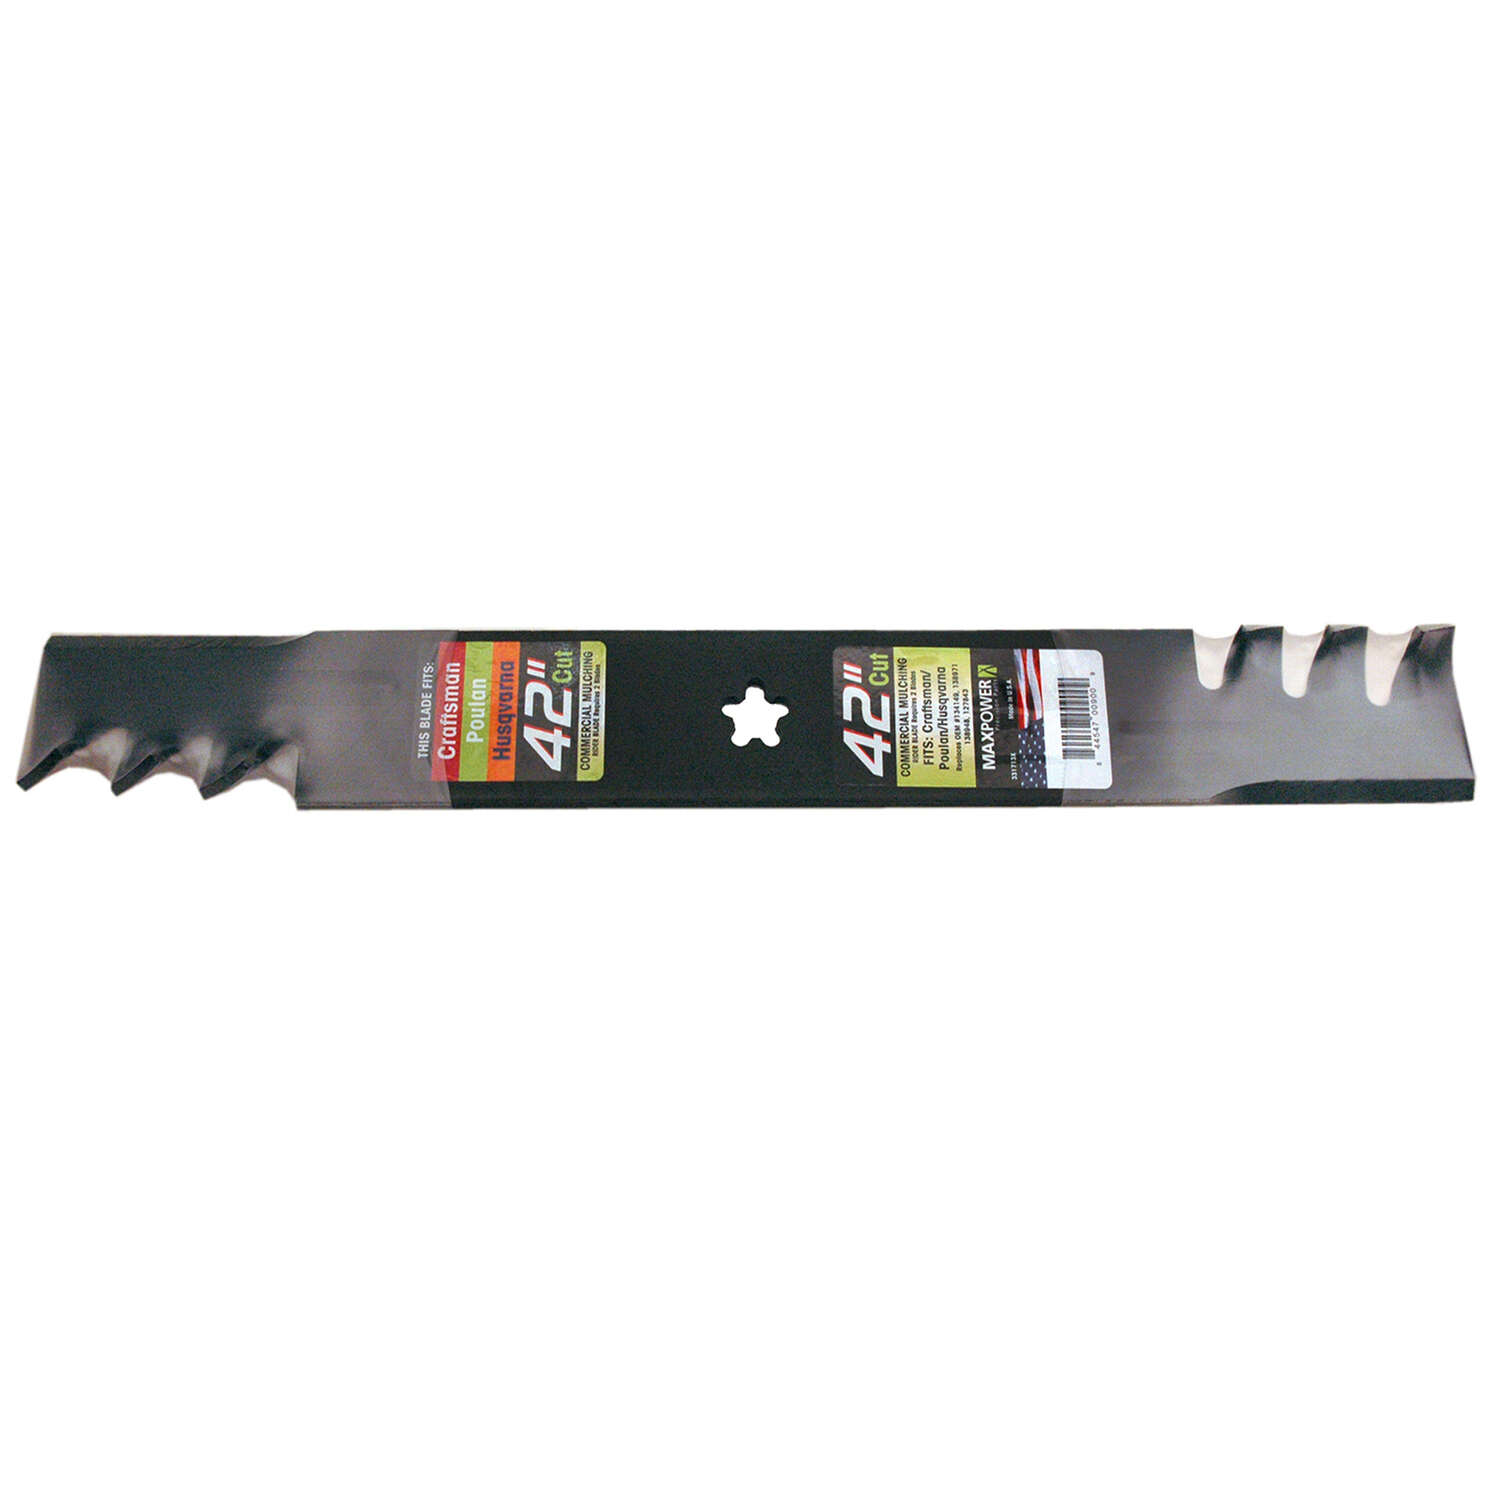 MaxPower 42 in. Mulching Mower Blade For Riding Mowers 1 pk